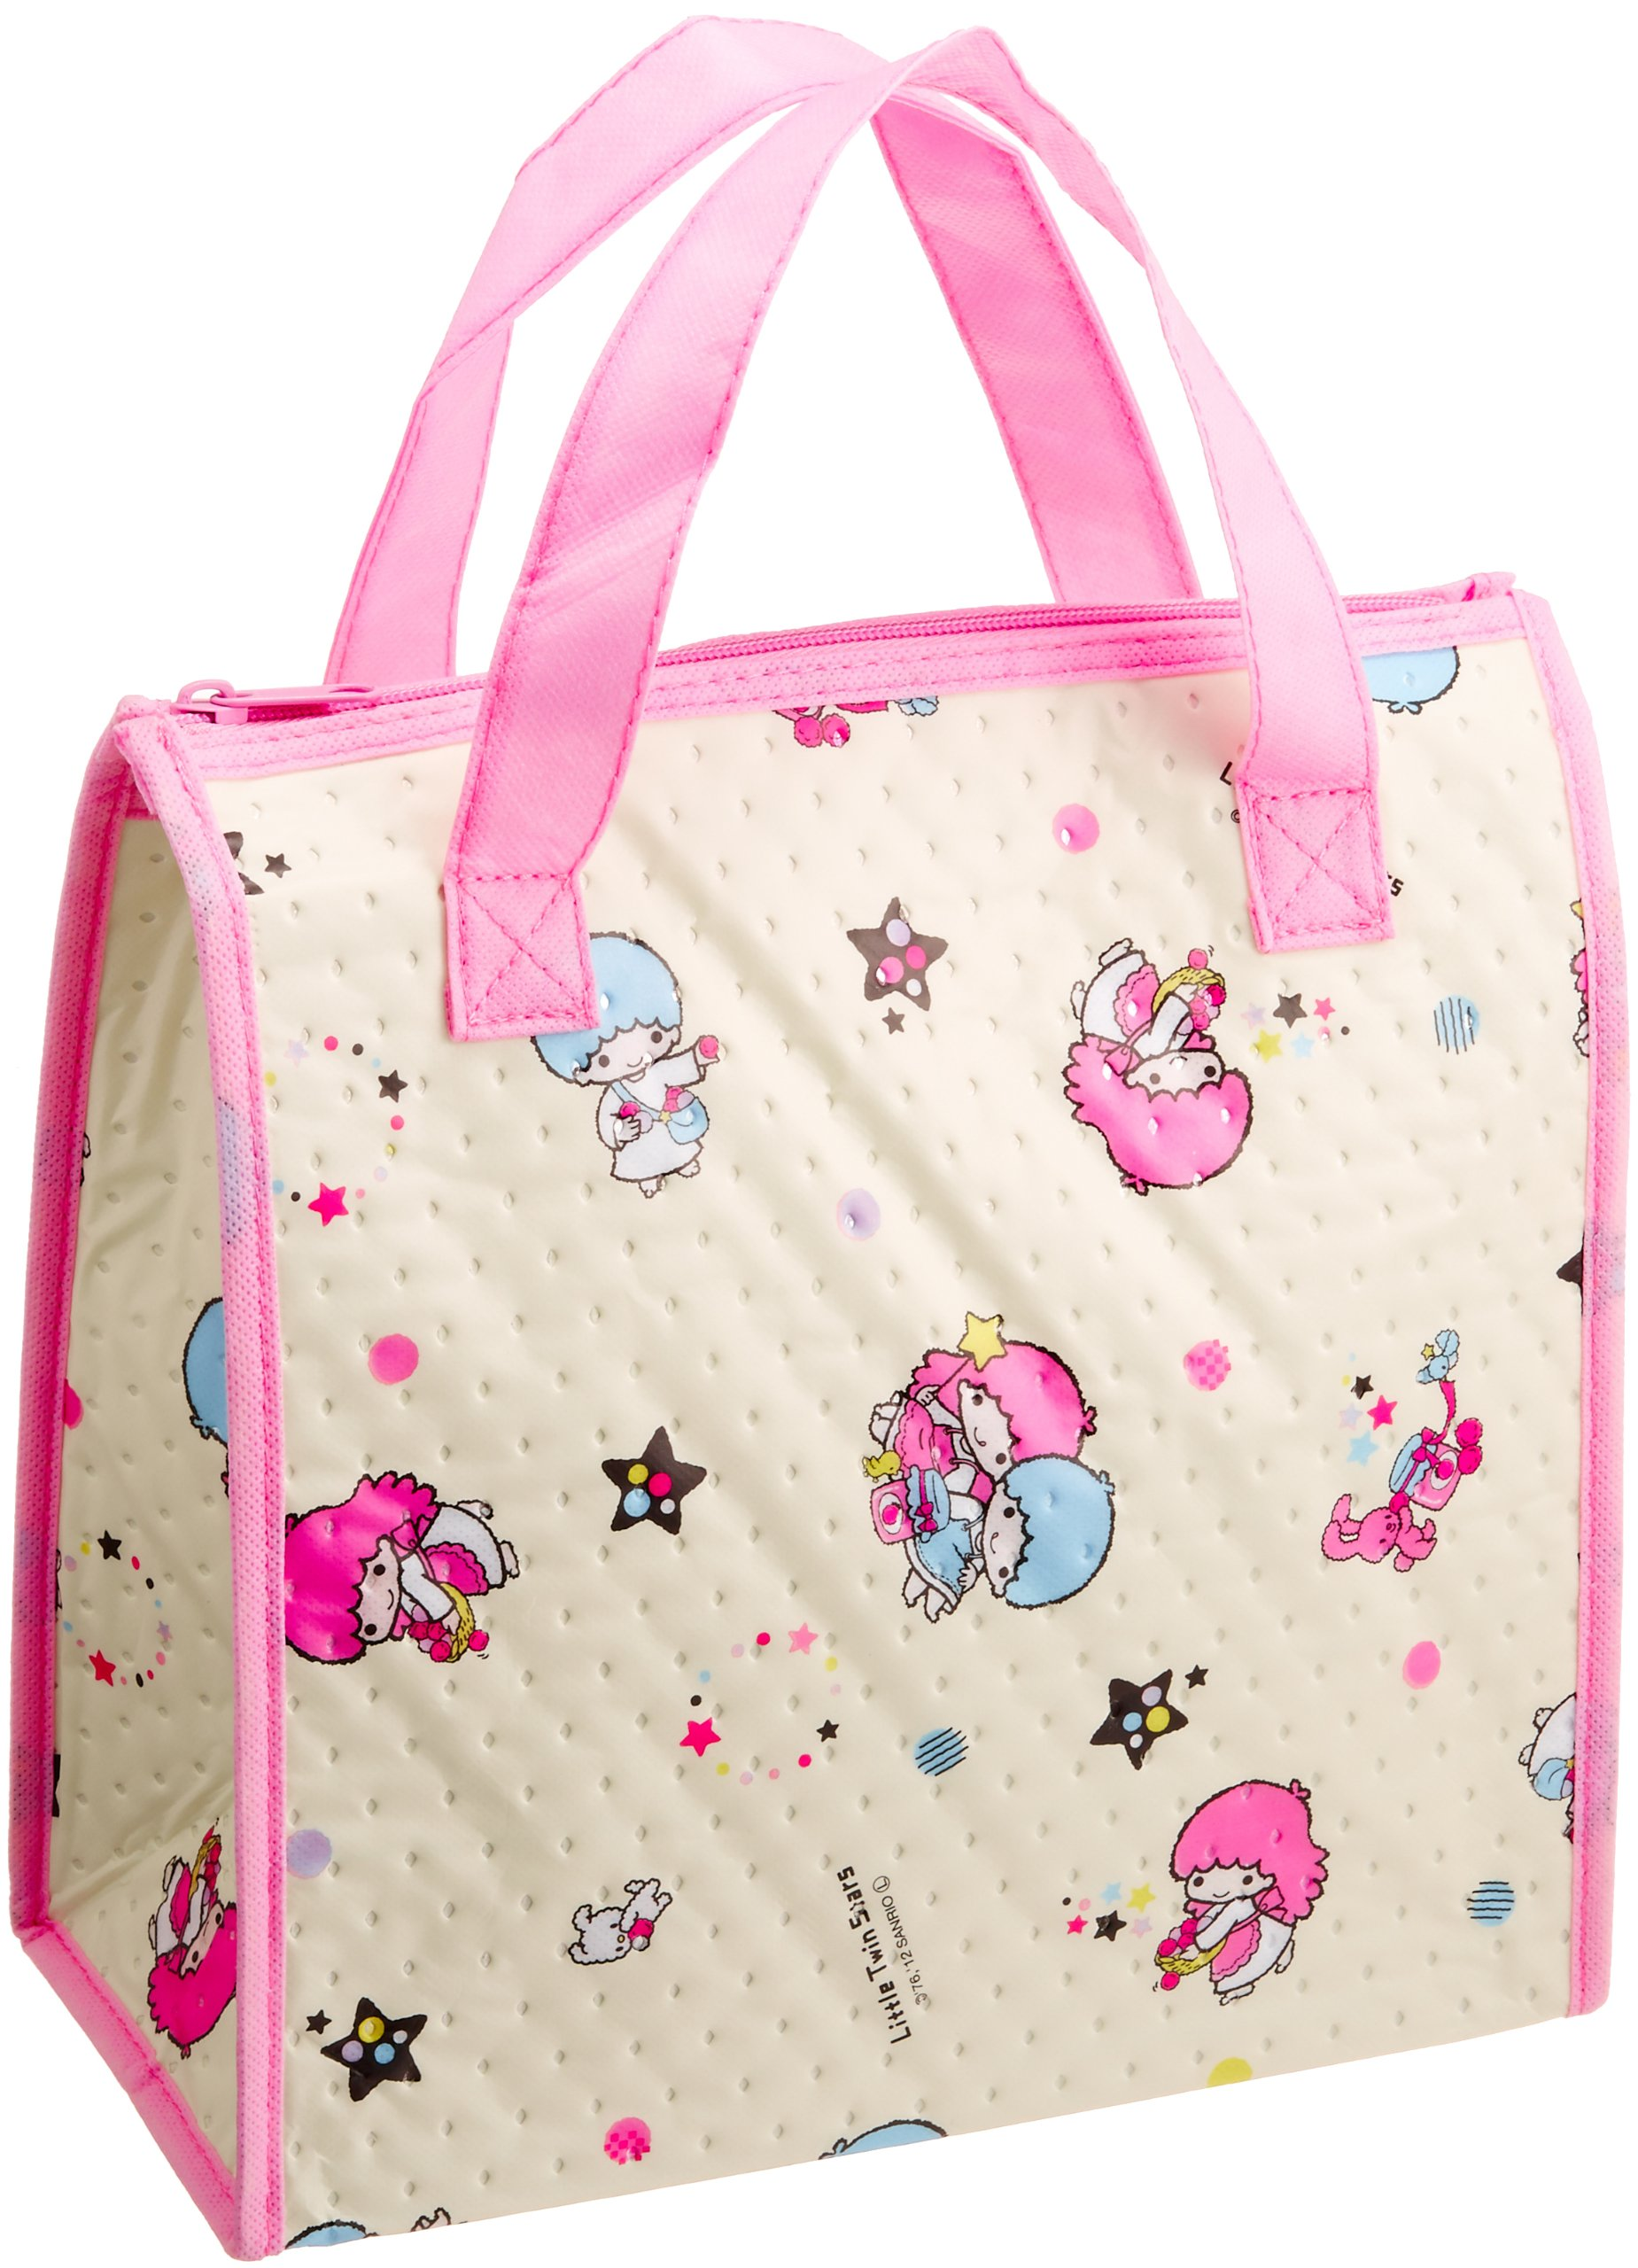 Little Twin Stars (Little Twin Stars) non-woven Cooler Bag FBC1 (japan import) by skater by Skater